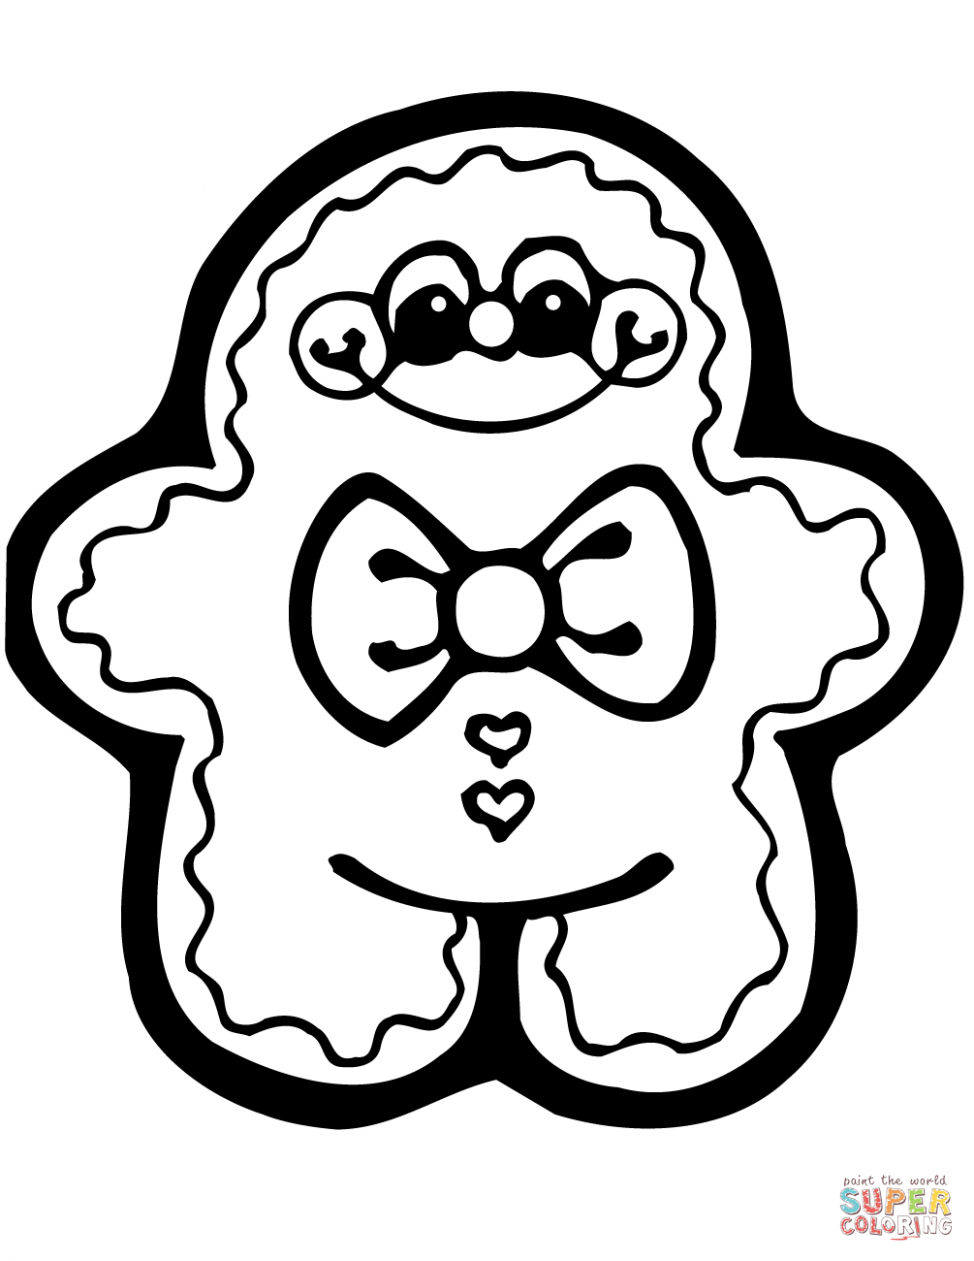 Cute Gingerbread Man coloring page | Free Printable Coloring Pages – Free Christmas Coloring Pages Gingerbread Man